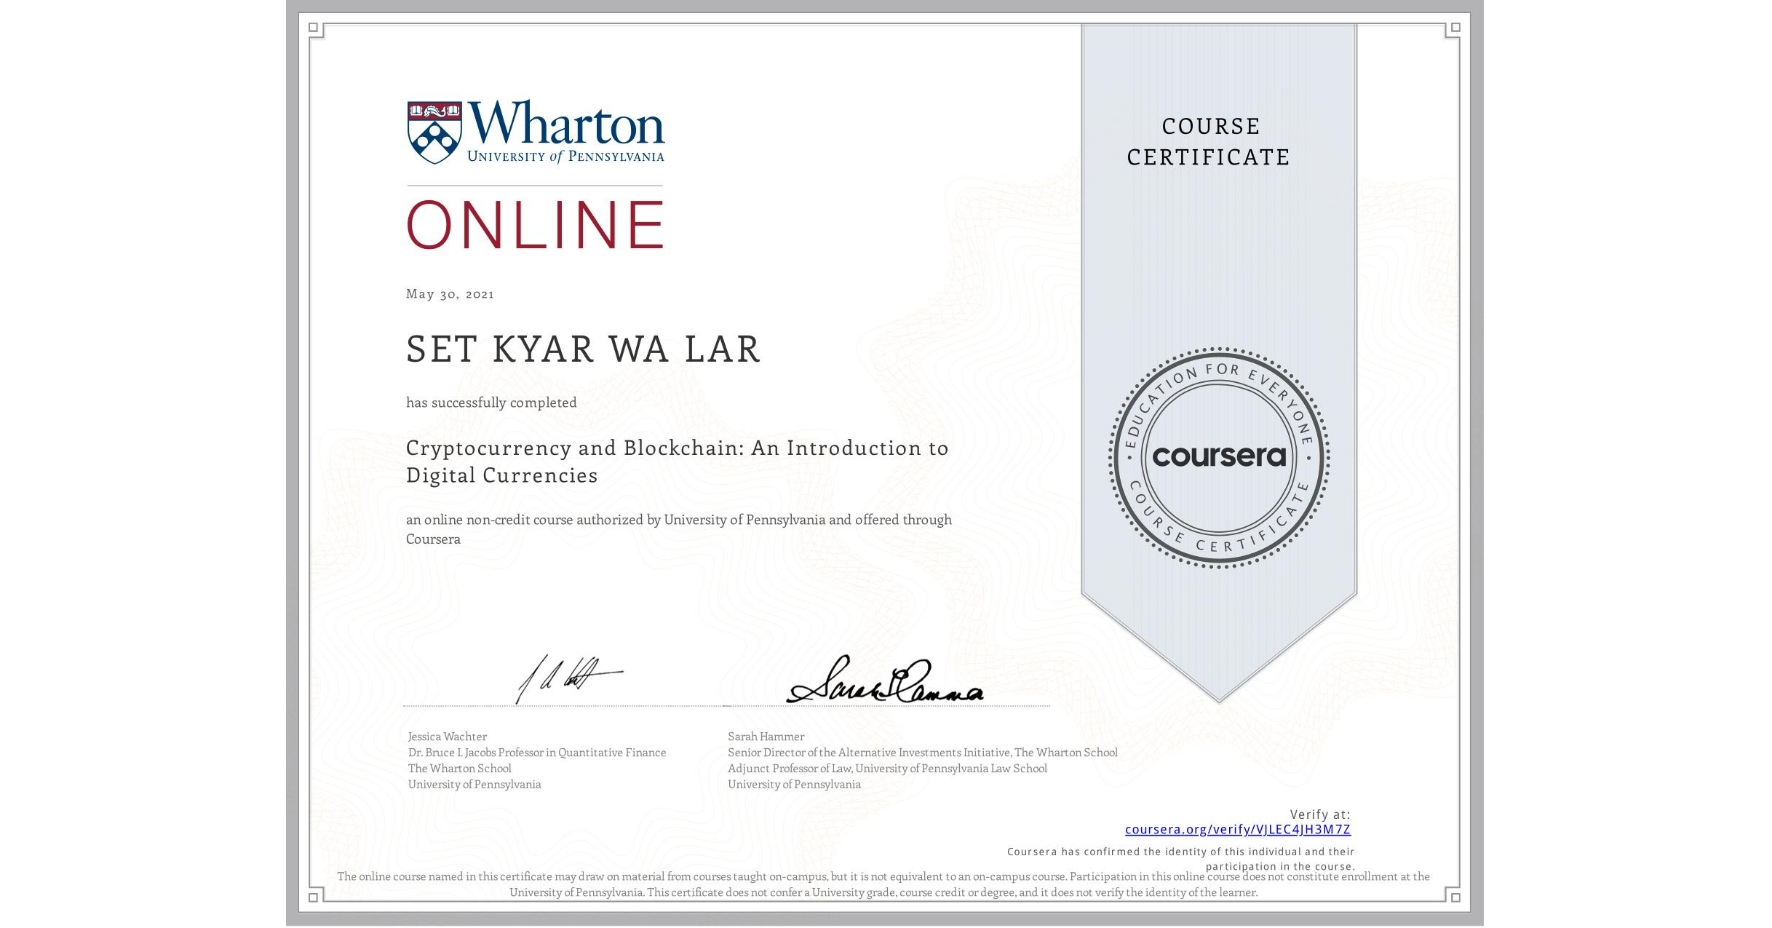 View certificate for  SET KYAR WA LAR, Cryptocurrency and Blockchain: An Introduction to Digital Currencies, an online non-credit course authorized by University of Pennsylvania and offered through Coursera